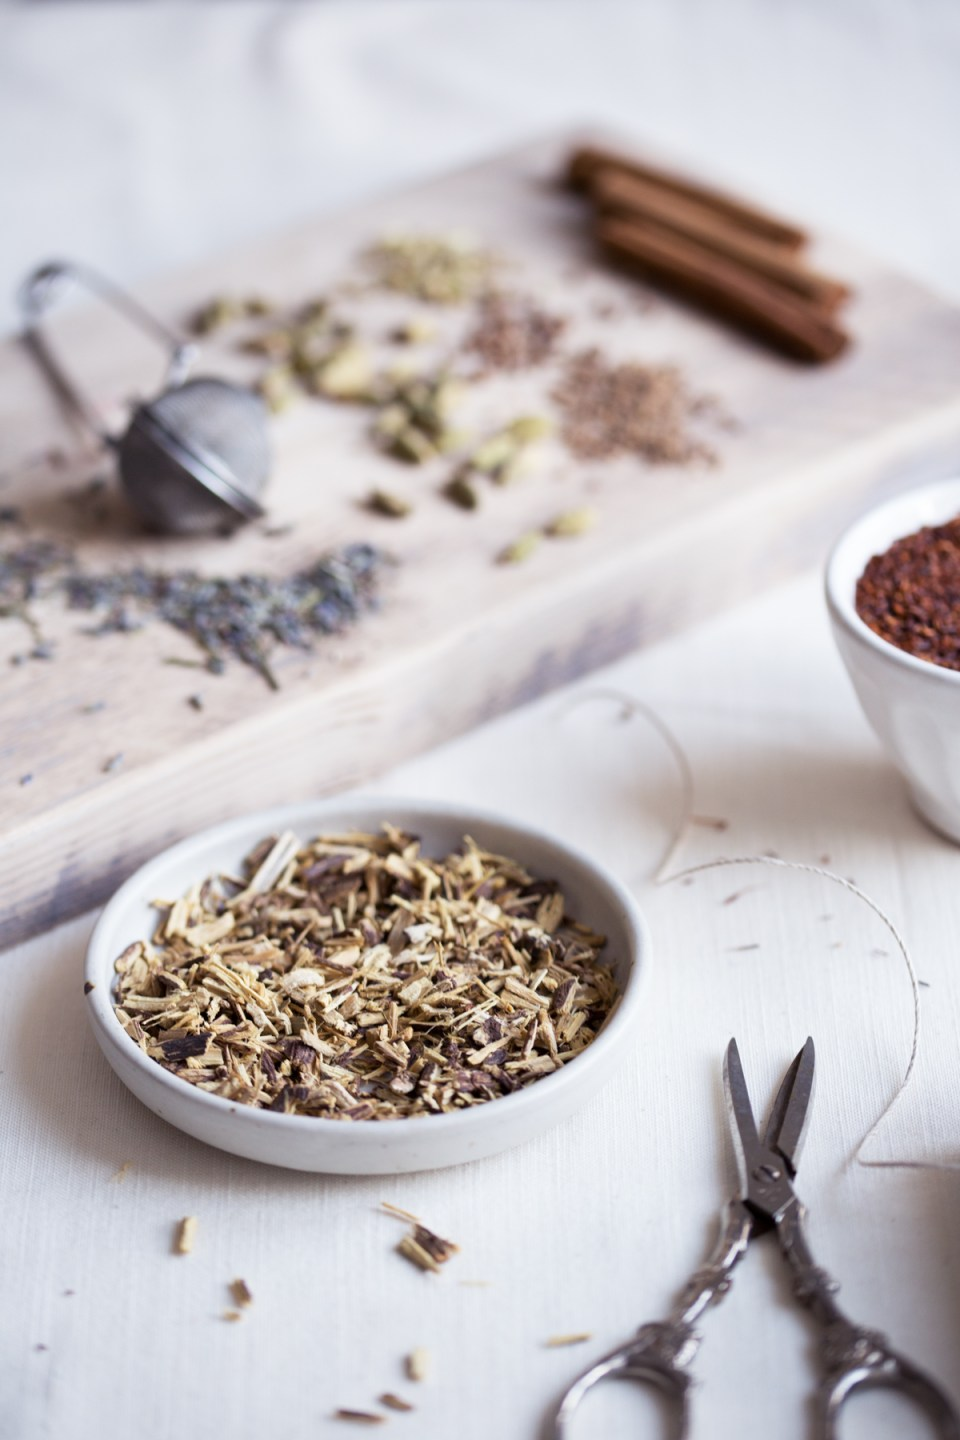 Homemade Herbal Tea Blends